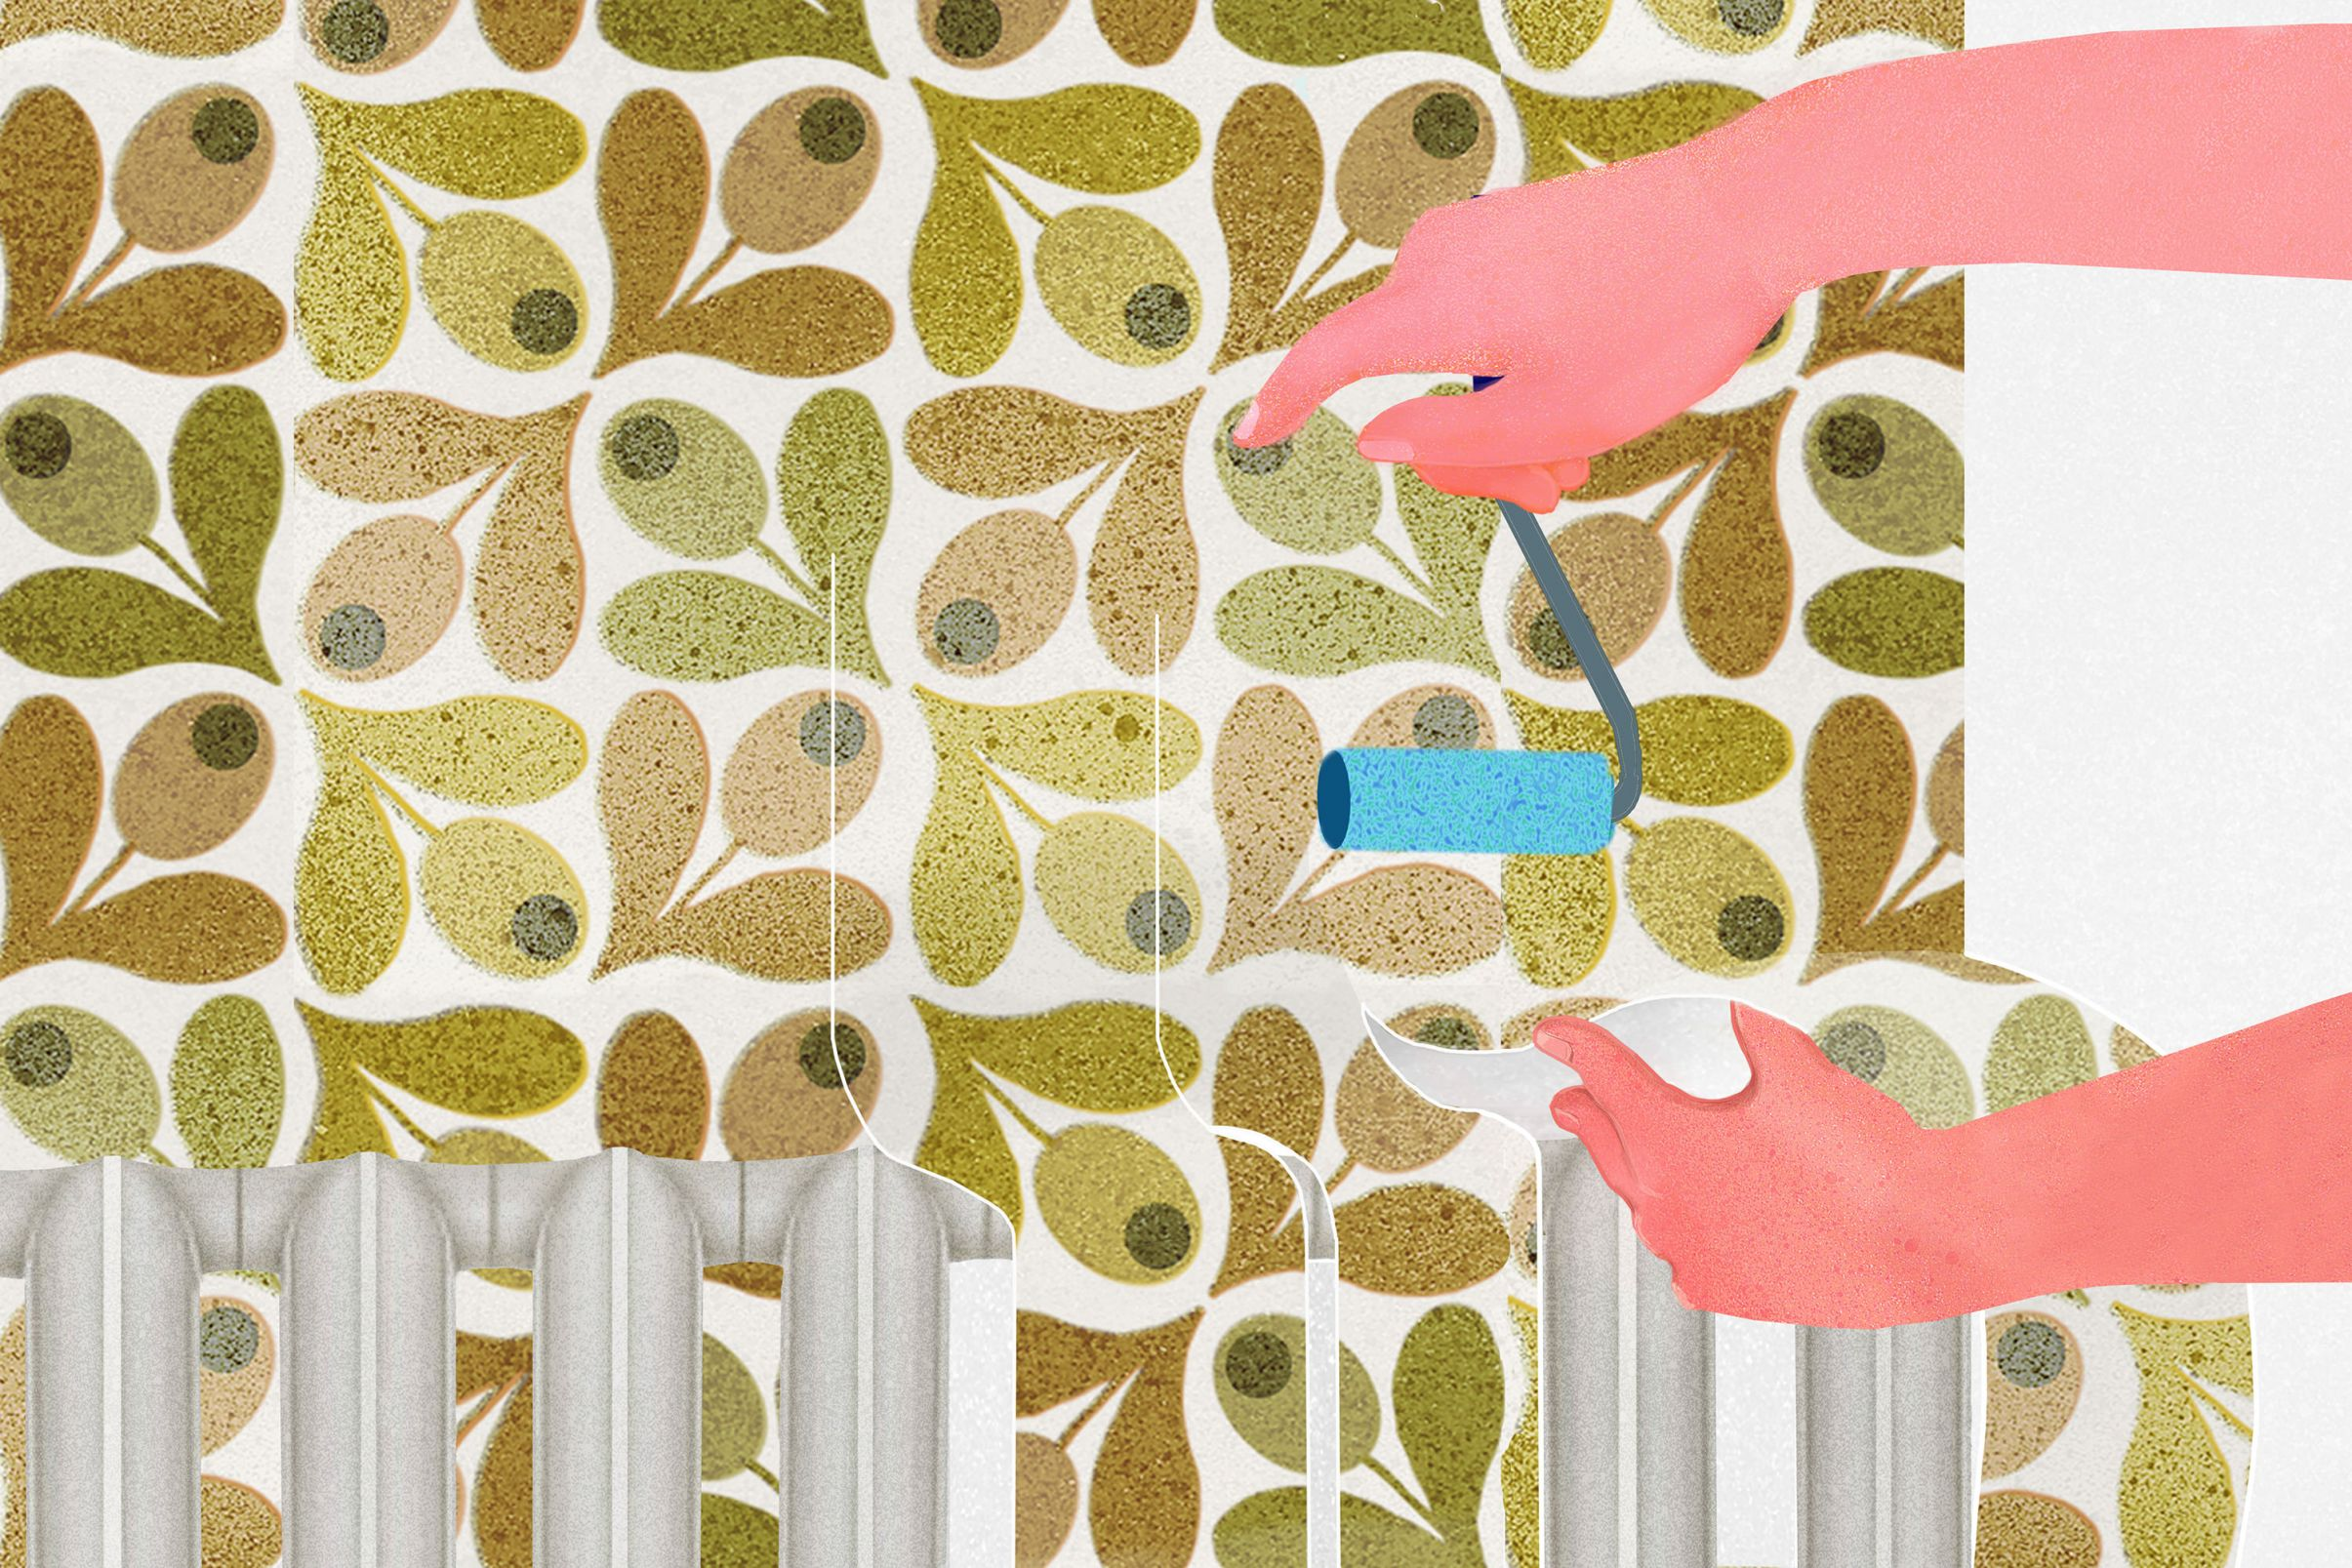 How-to-wallpaper-behind-radiators-Cut-individual-strips-and-apply-them-to-the-wall-behind-the-radiator